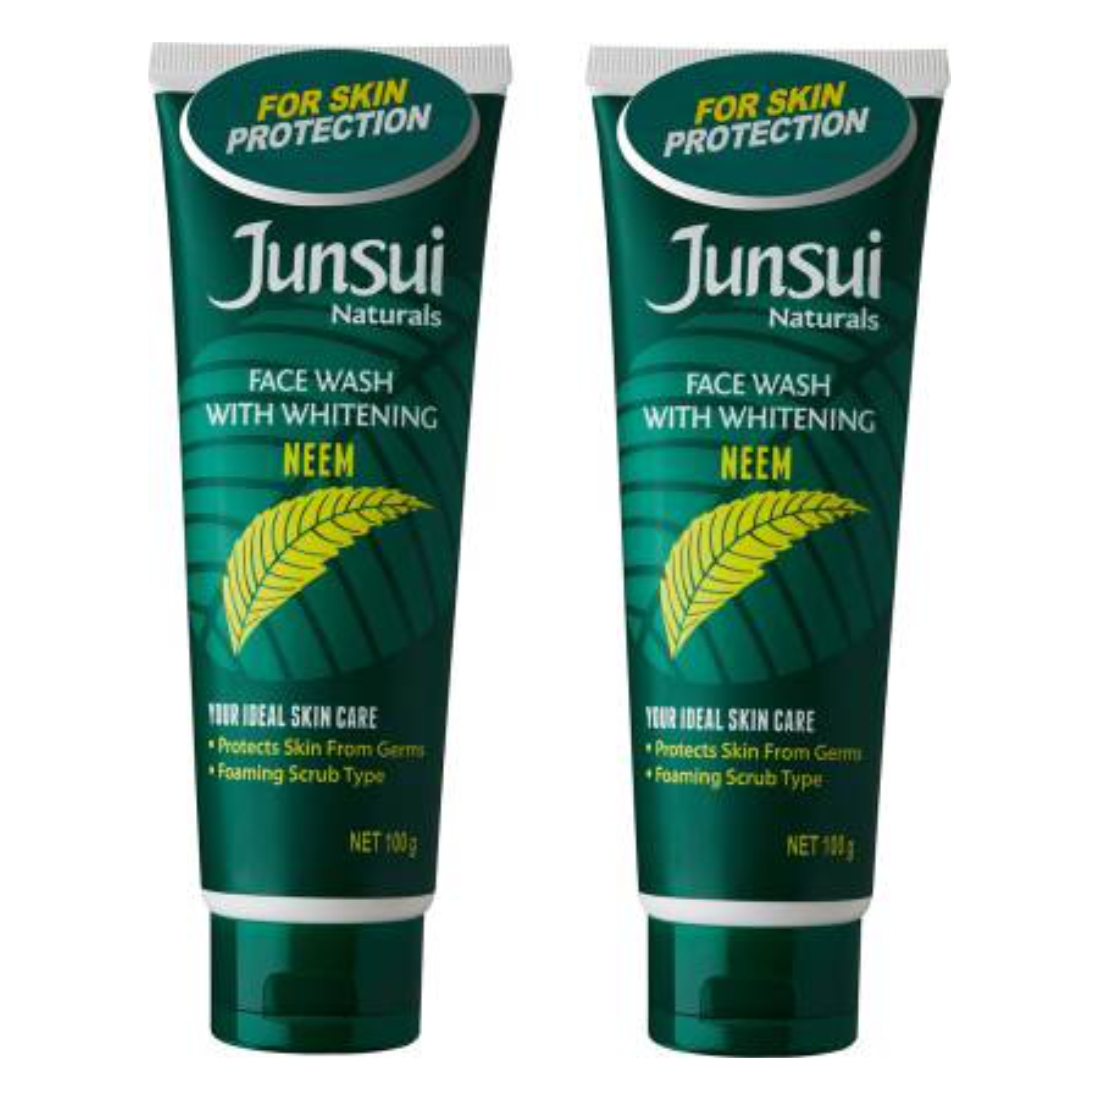 Junsui Naturals Face Wash with Whitening Skin Protection- Neem Face Wash????????(200 g)